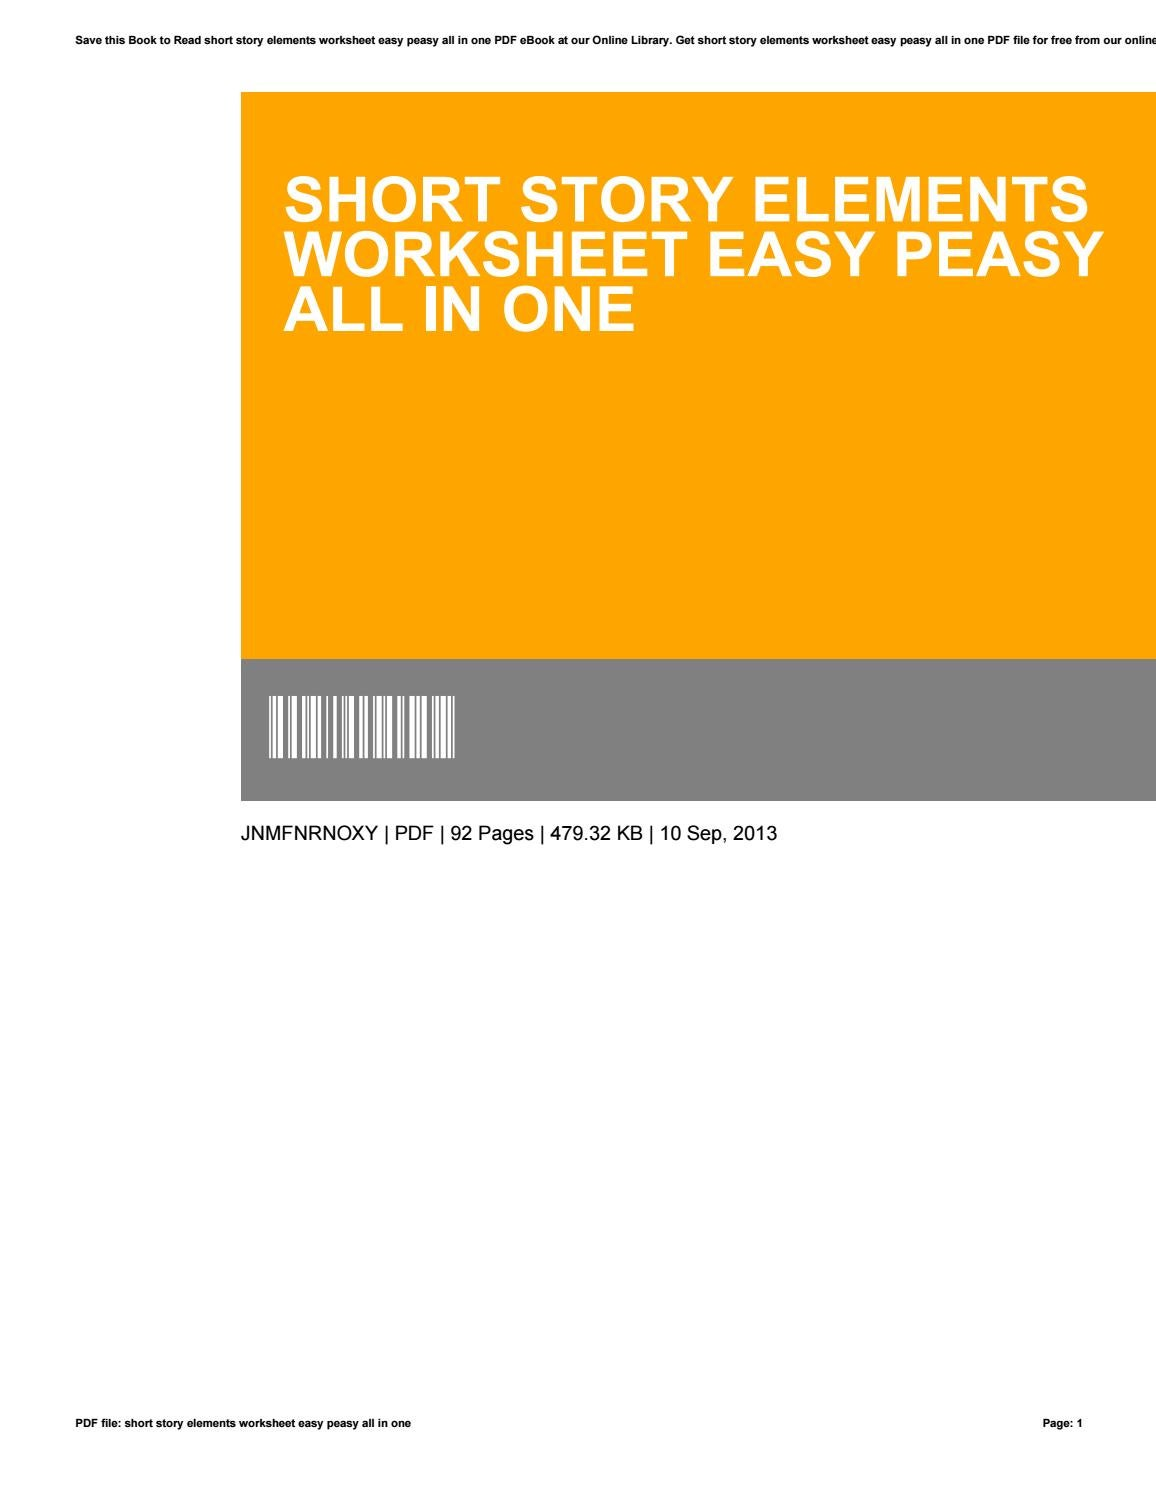 Short Story Elements Worksheet Easy Peasy All In One By